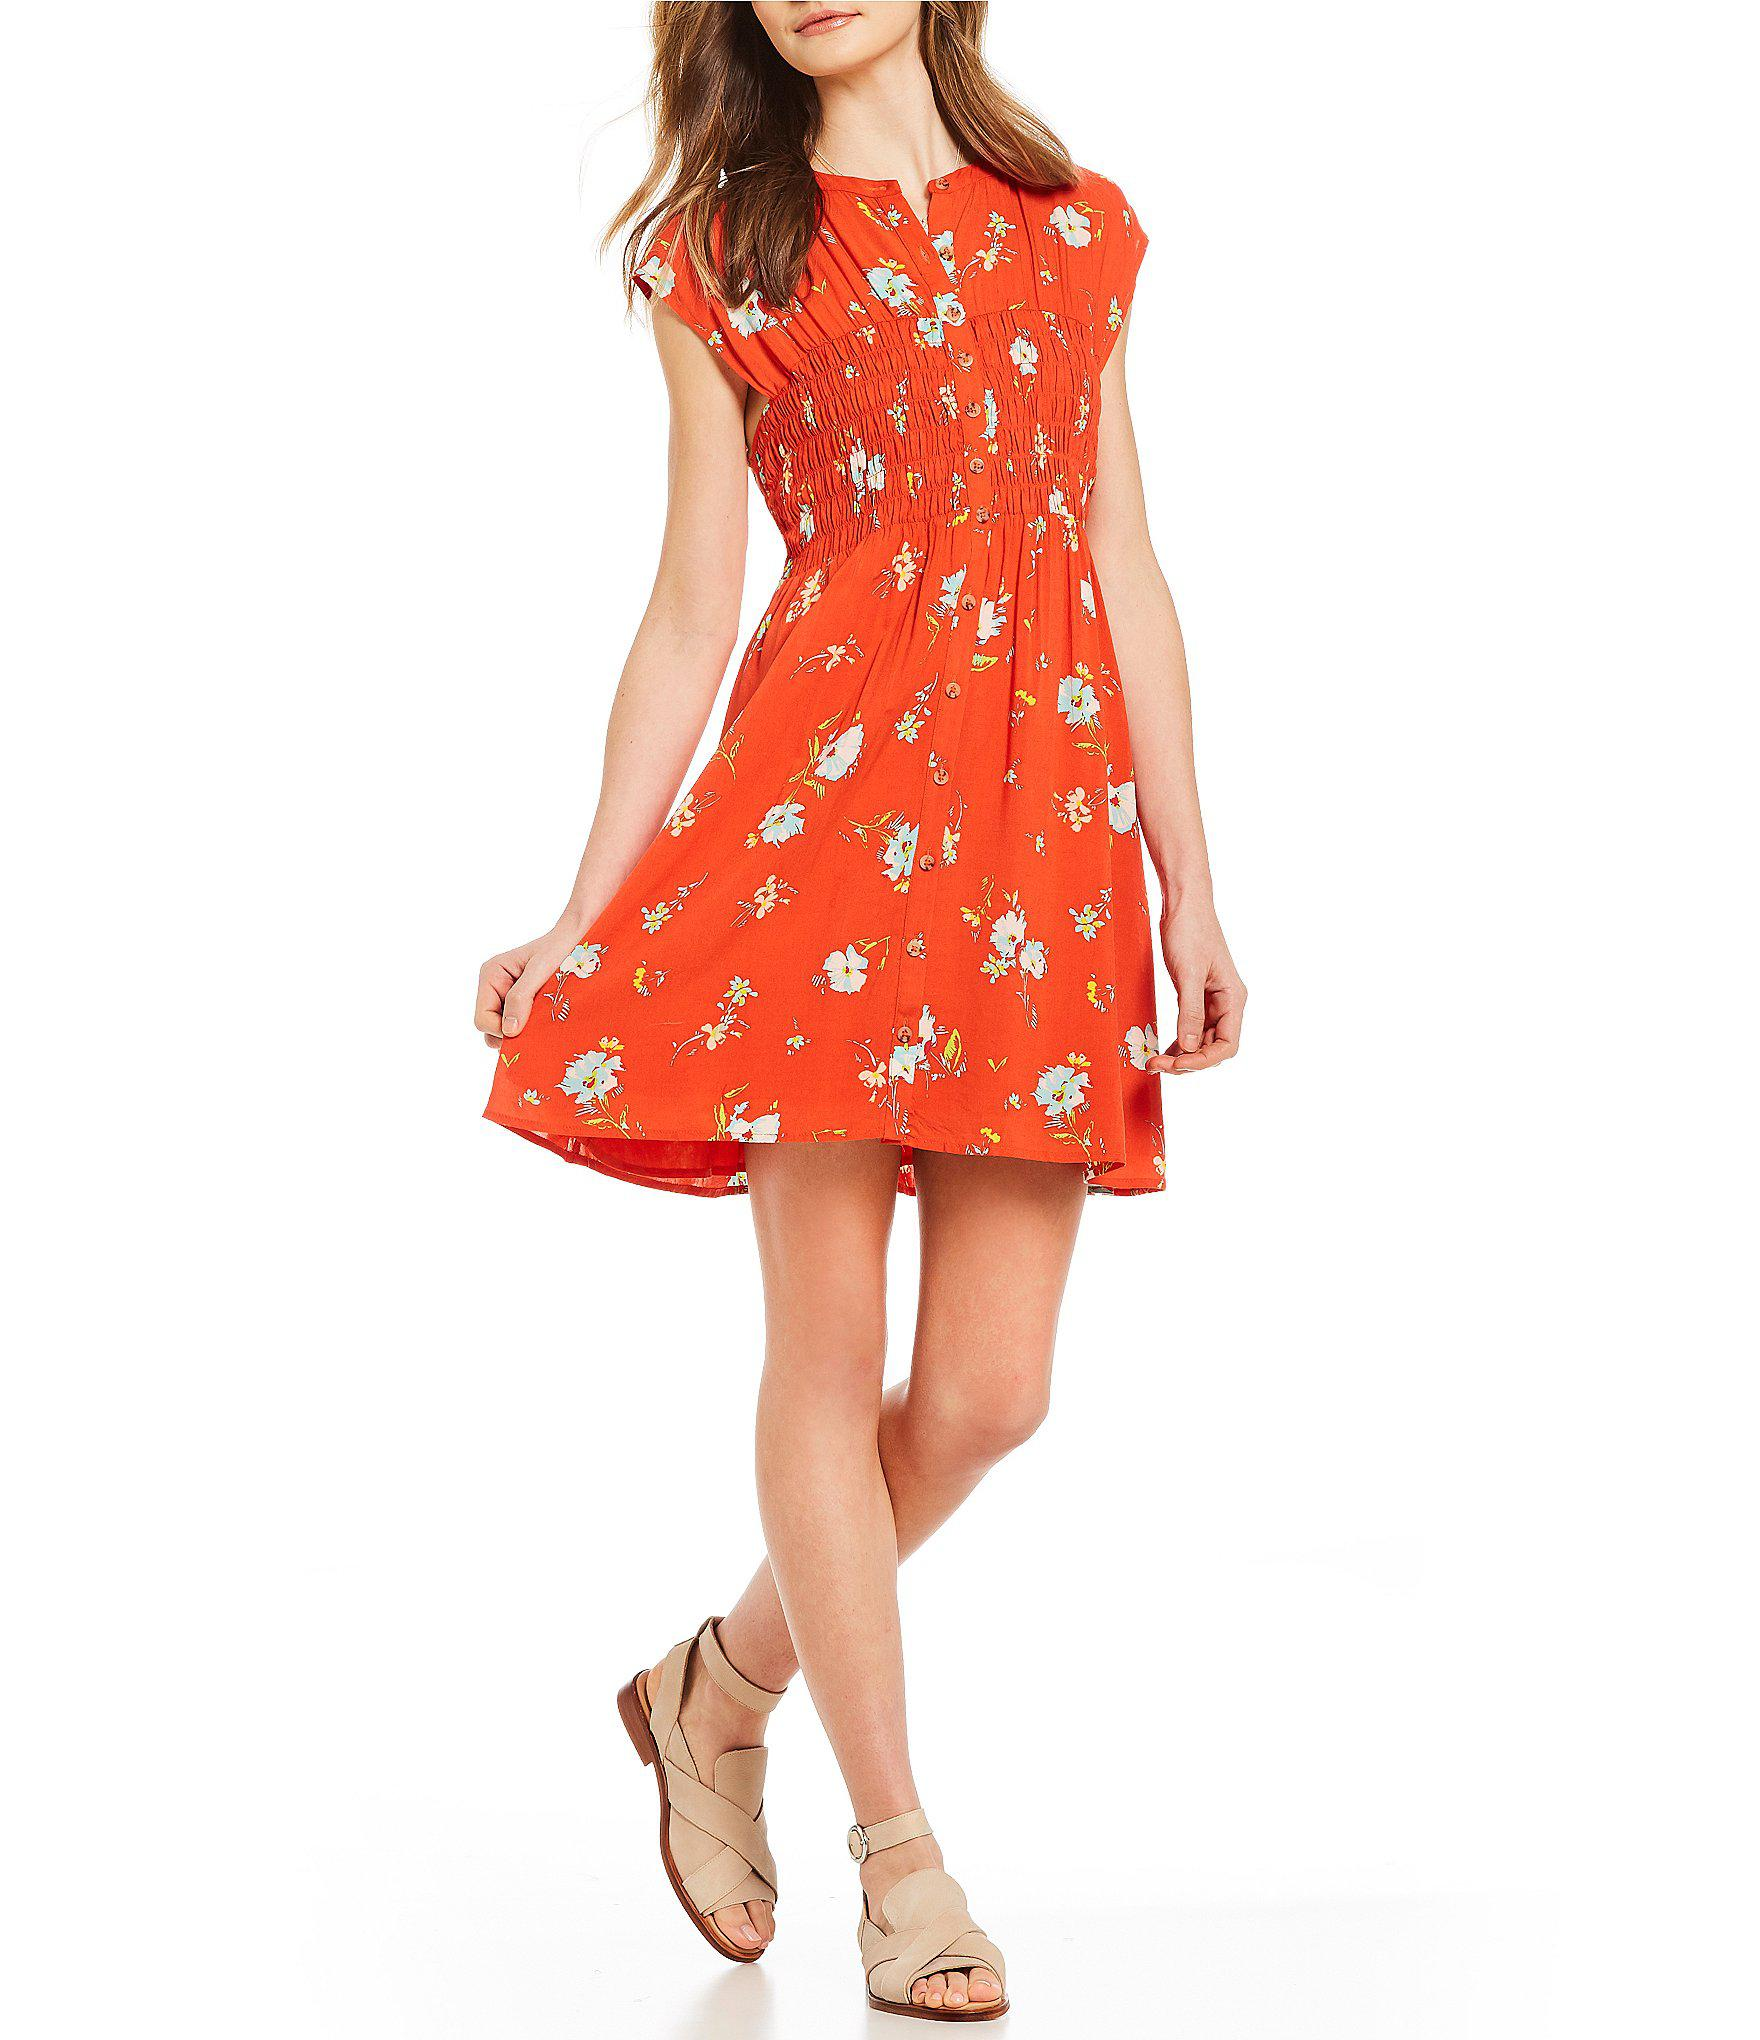 c73005cfa88a Lyst - Free People Greatest Day Smocked Floral Print Mini Dress in Red